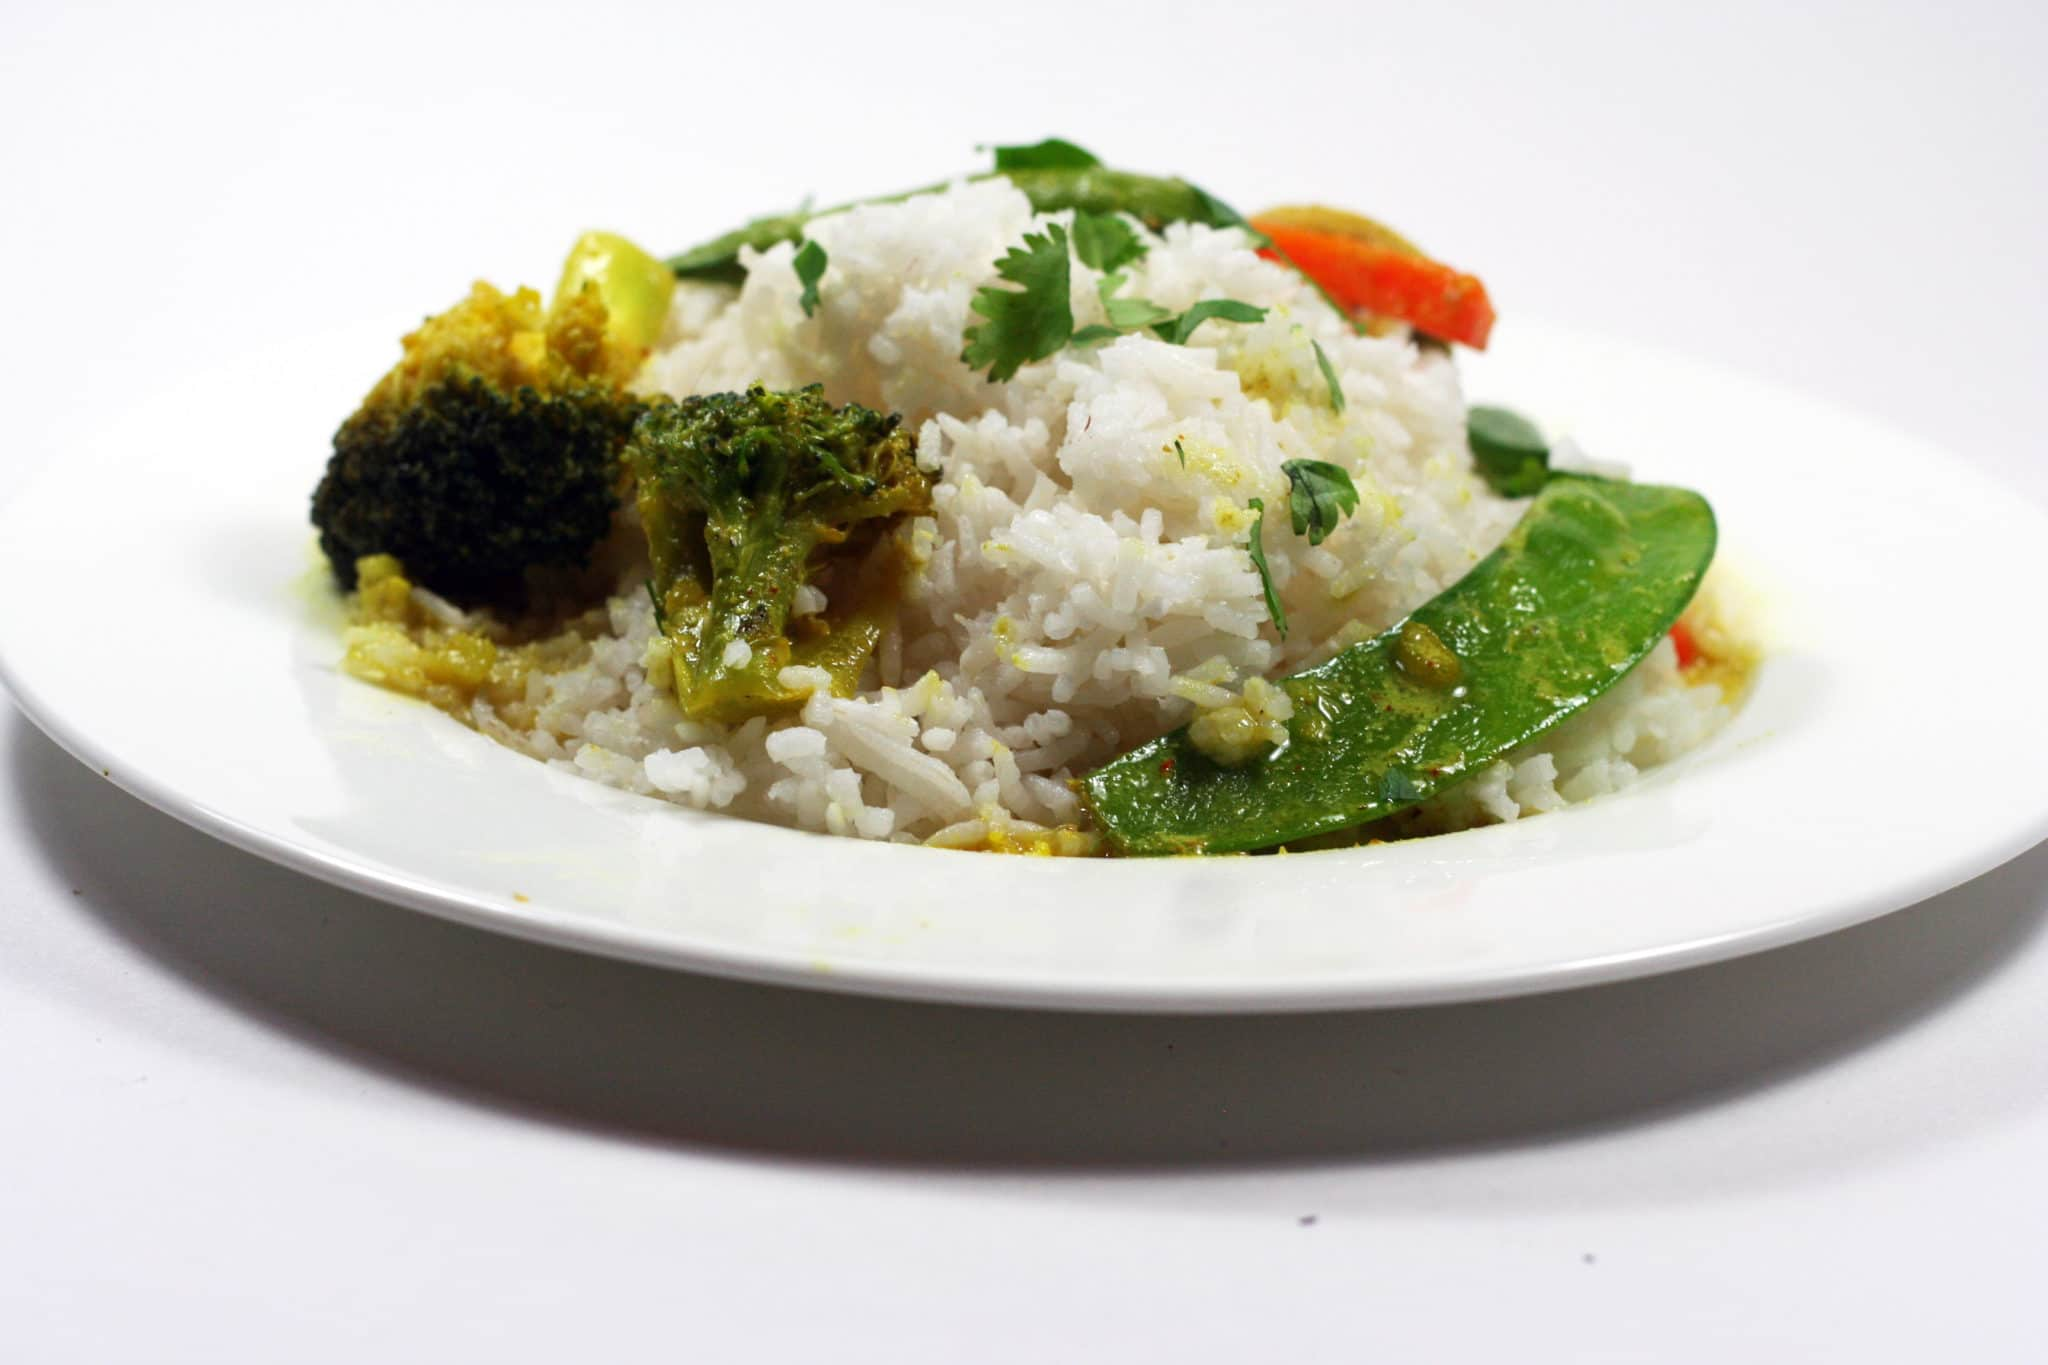 Coconut curry vegetables and rice